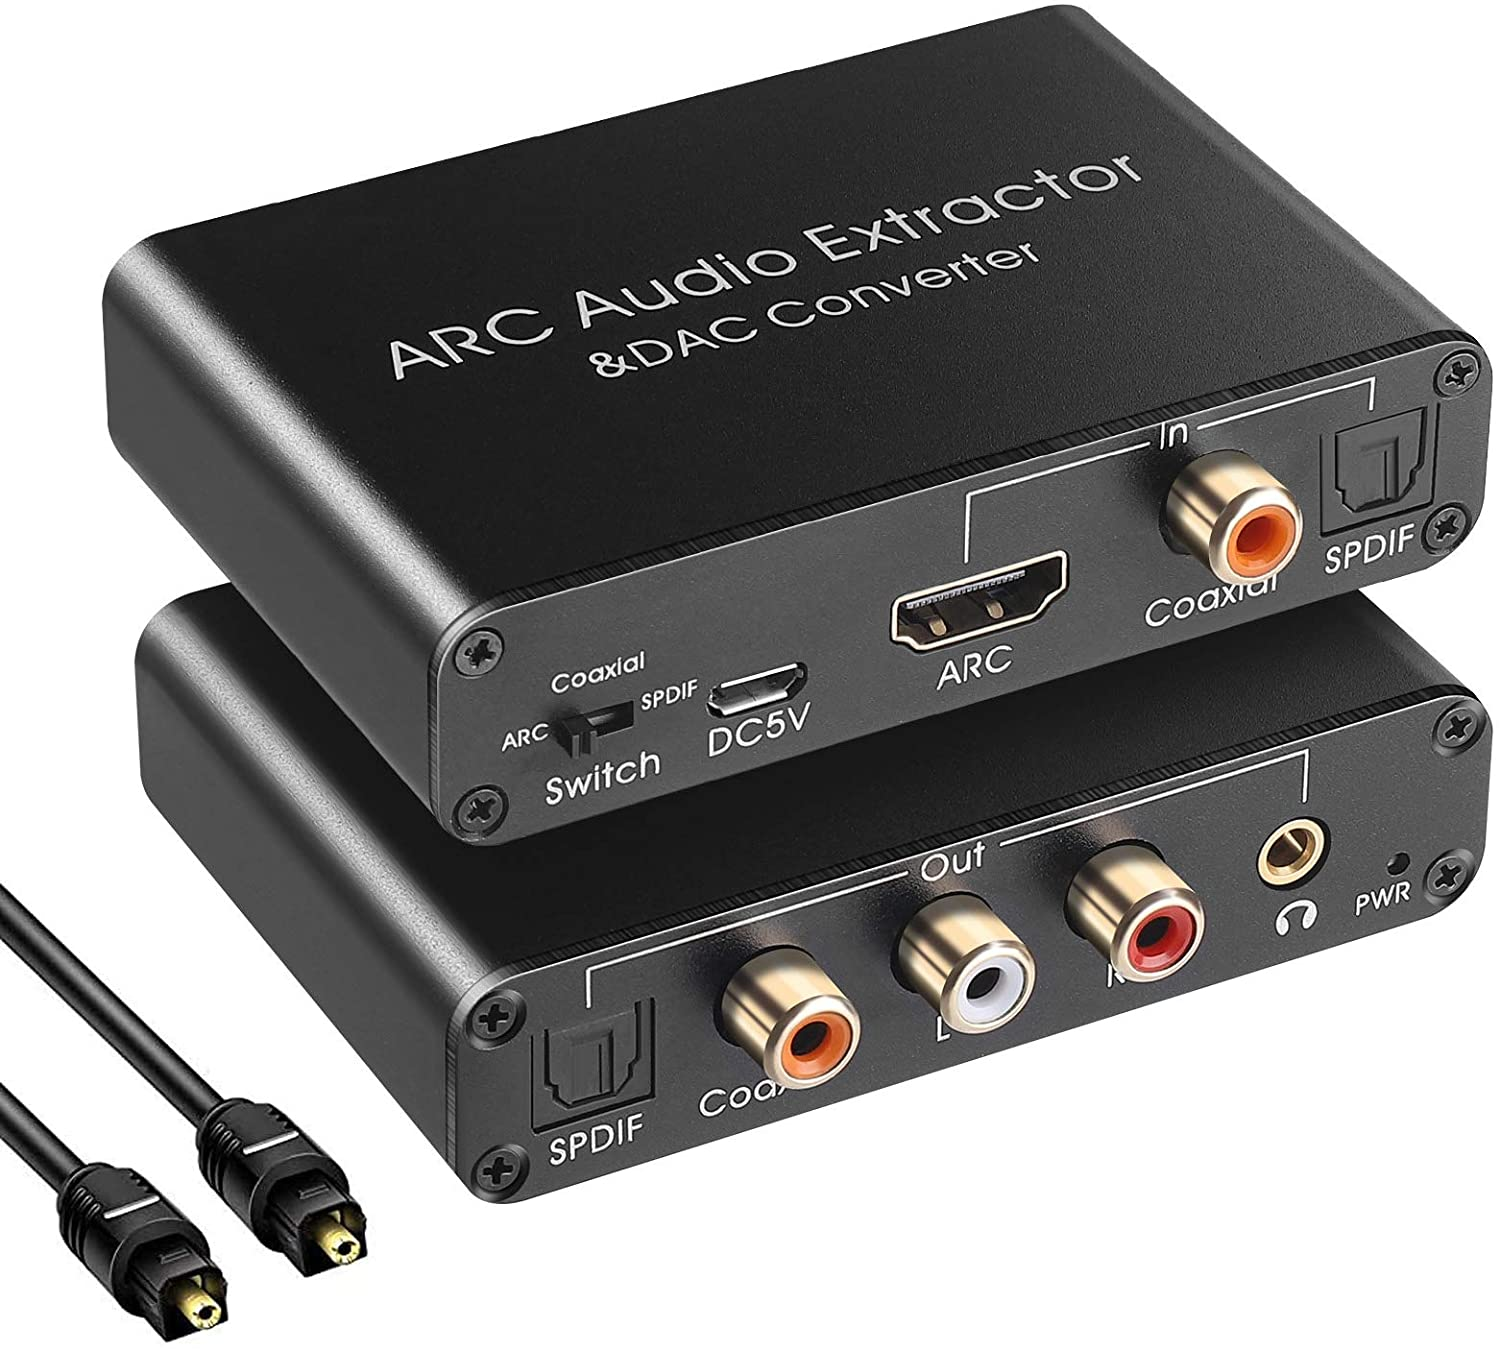 HDMI ARC Audio Extractor 192KHz DAC Converter ARC Audio Extractor Support Digital HDMI Audio to Analog Stereo Audio RCA L/R Coaxial SPDIF and 3.5mm Jack ARC Audio Adapter for TV